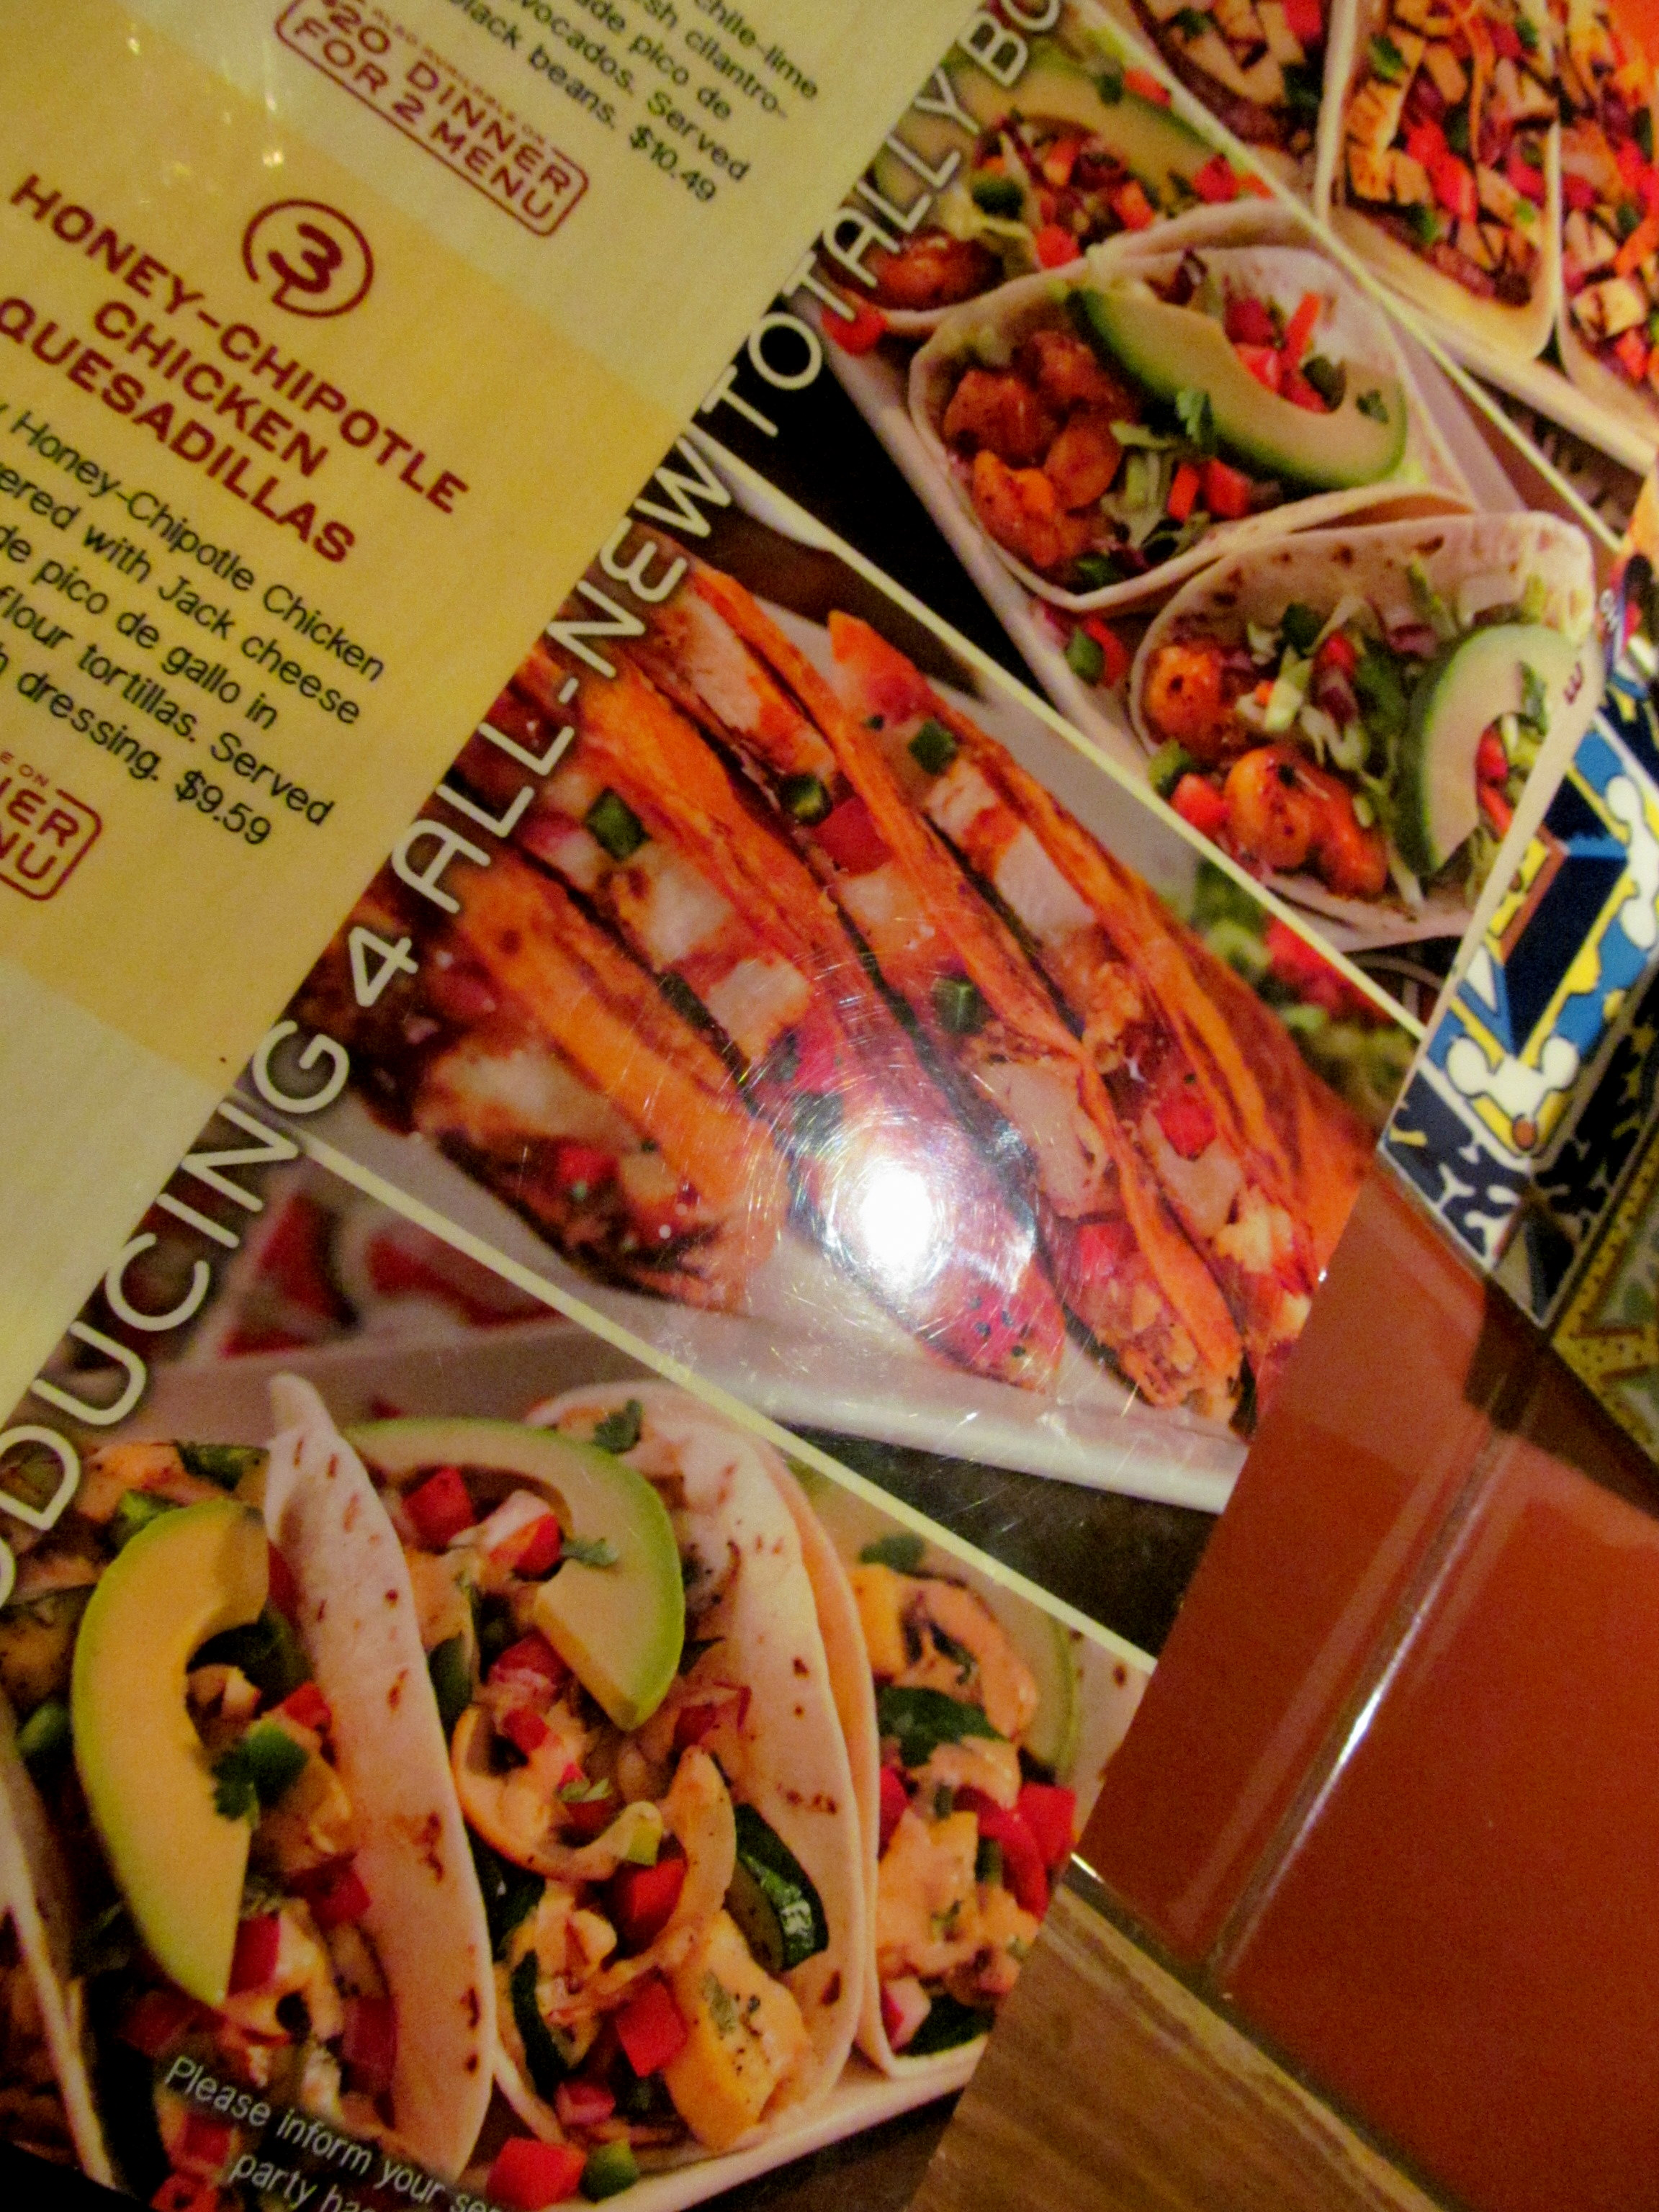 Check out that avocado – the actual meals did indeed contain those ...